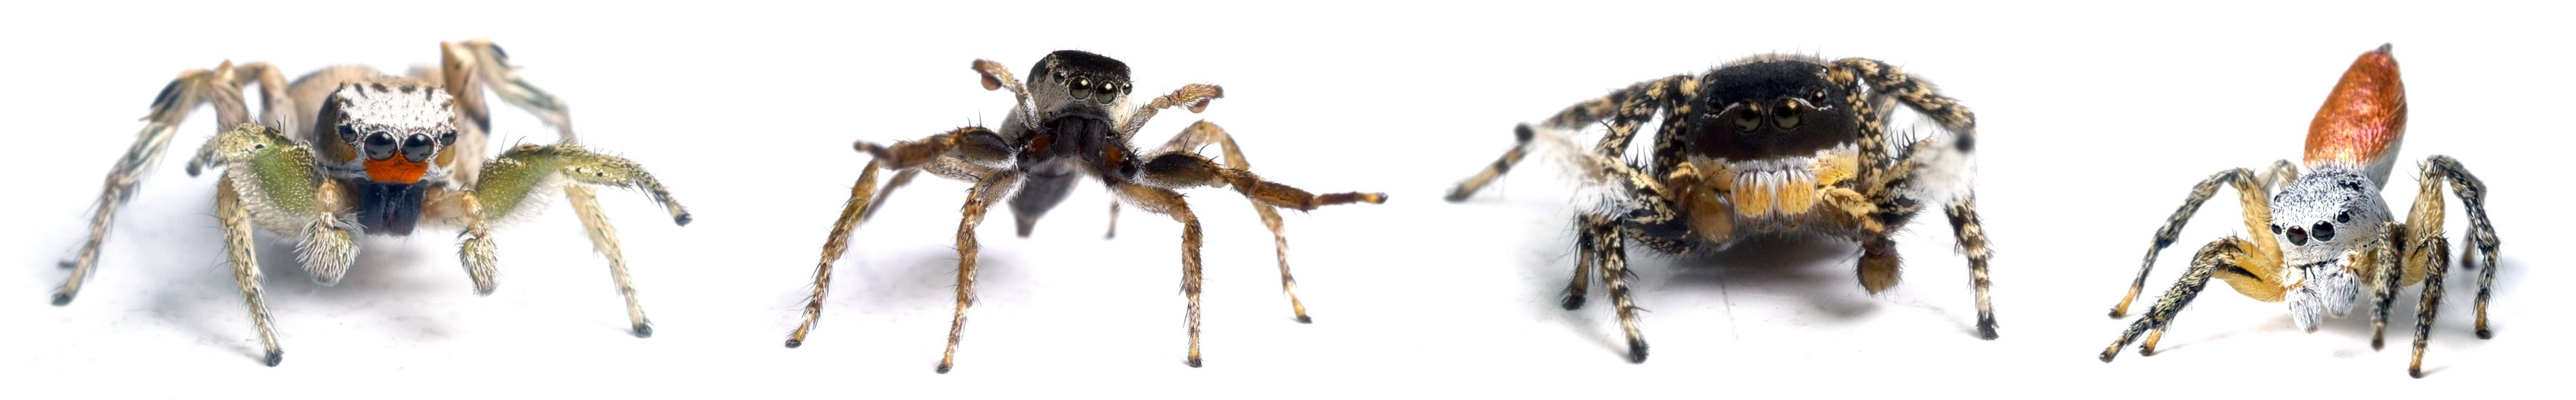 Four species of Habronattus jumping spiders